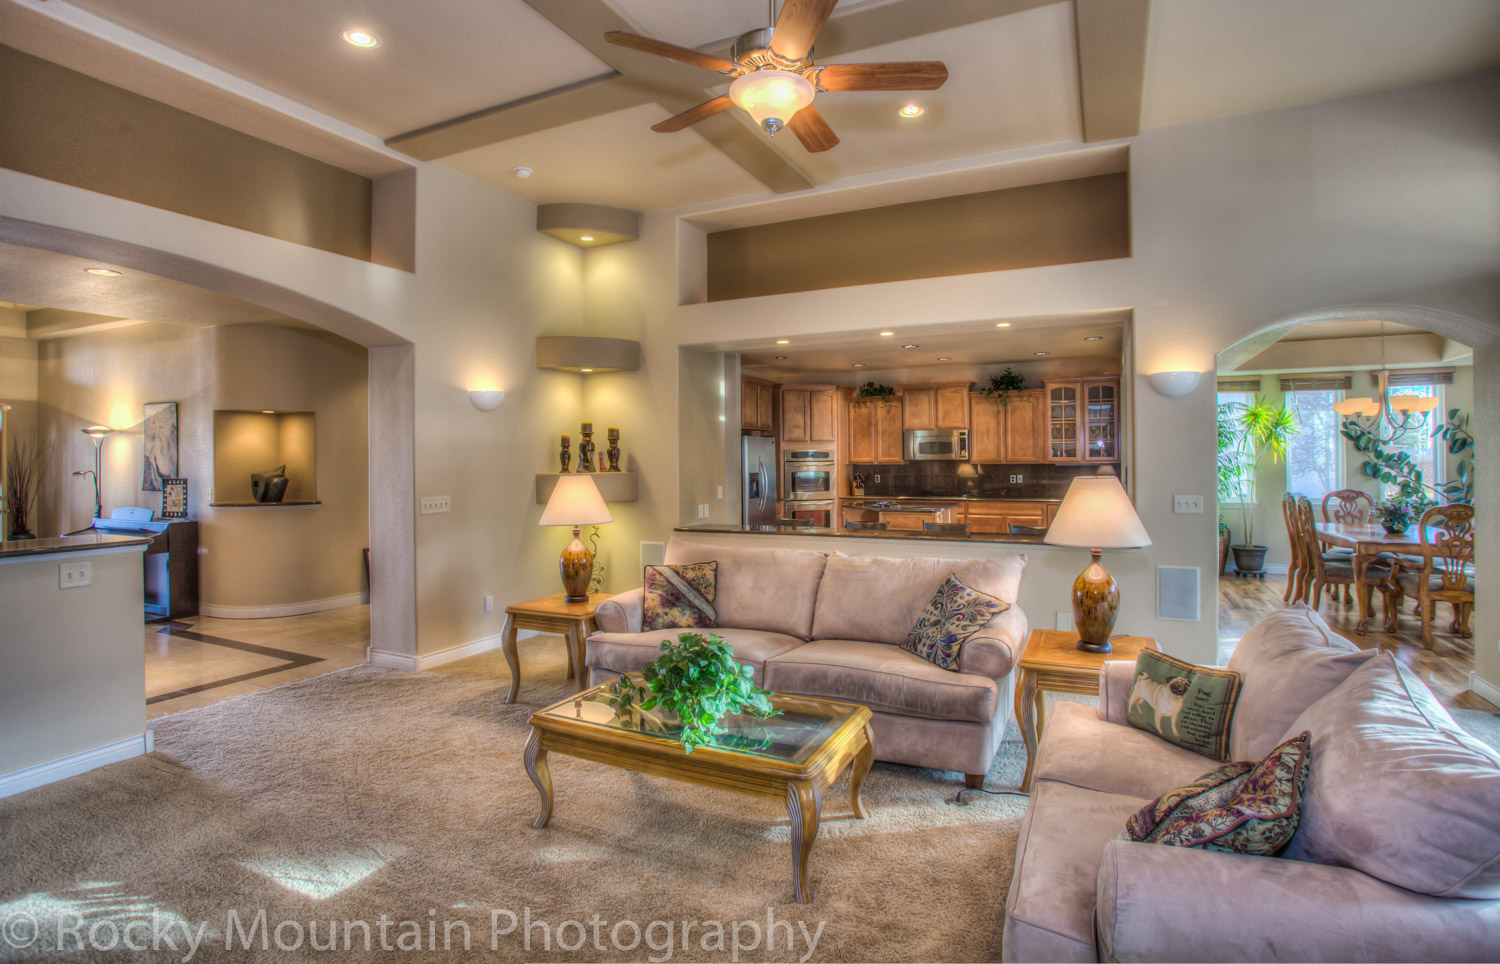 Residential Real Estate HDR Interior-13